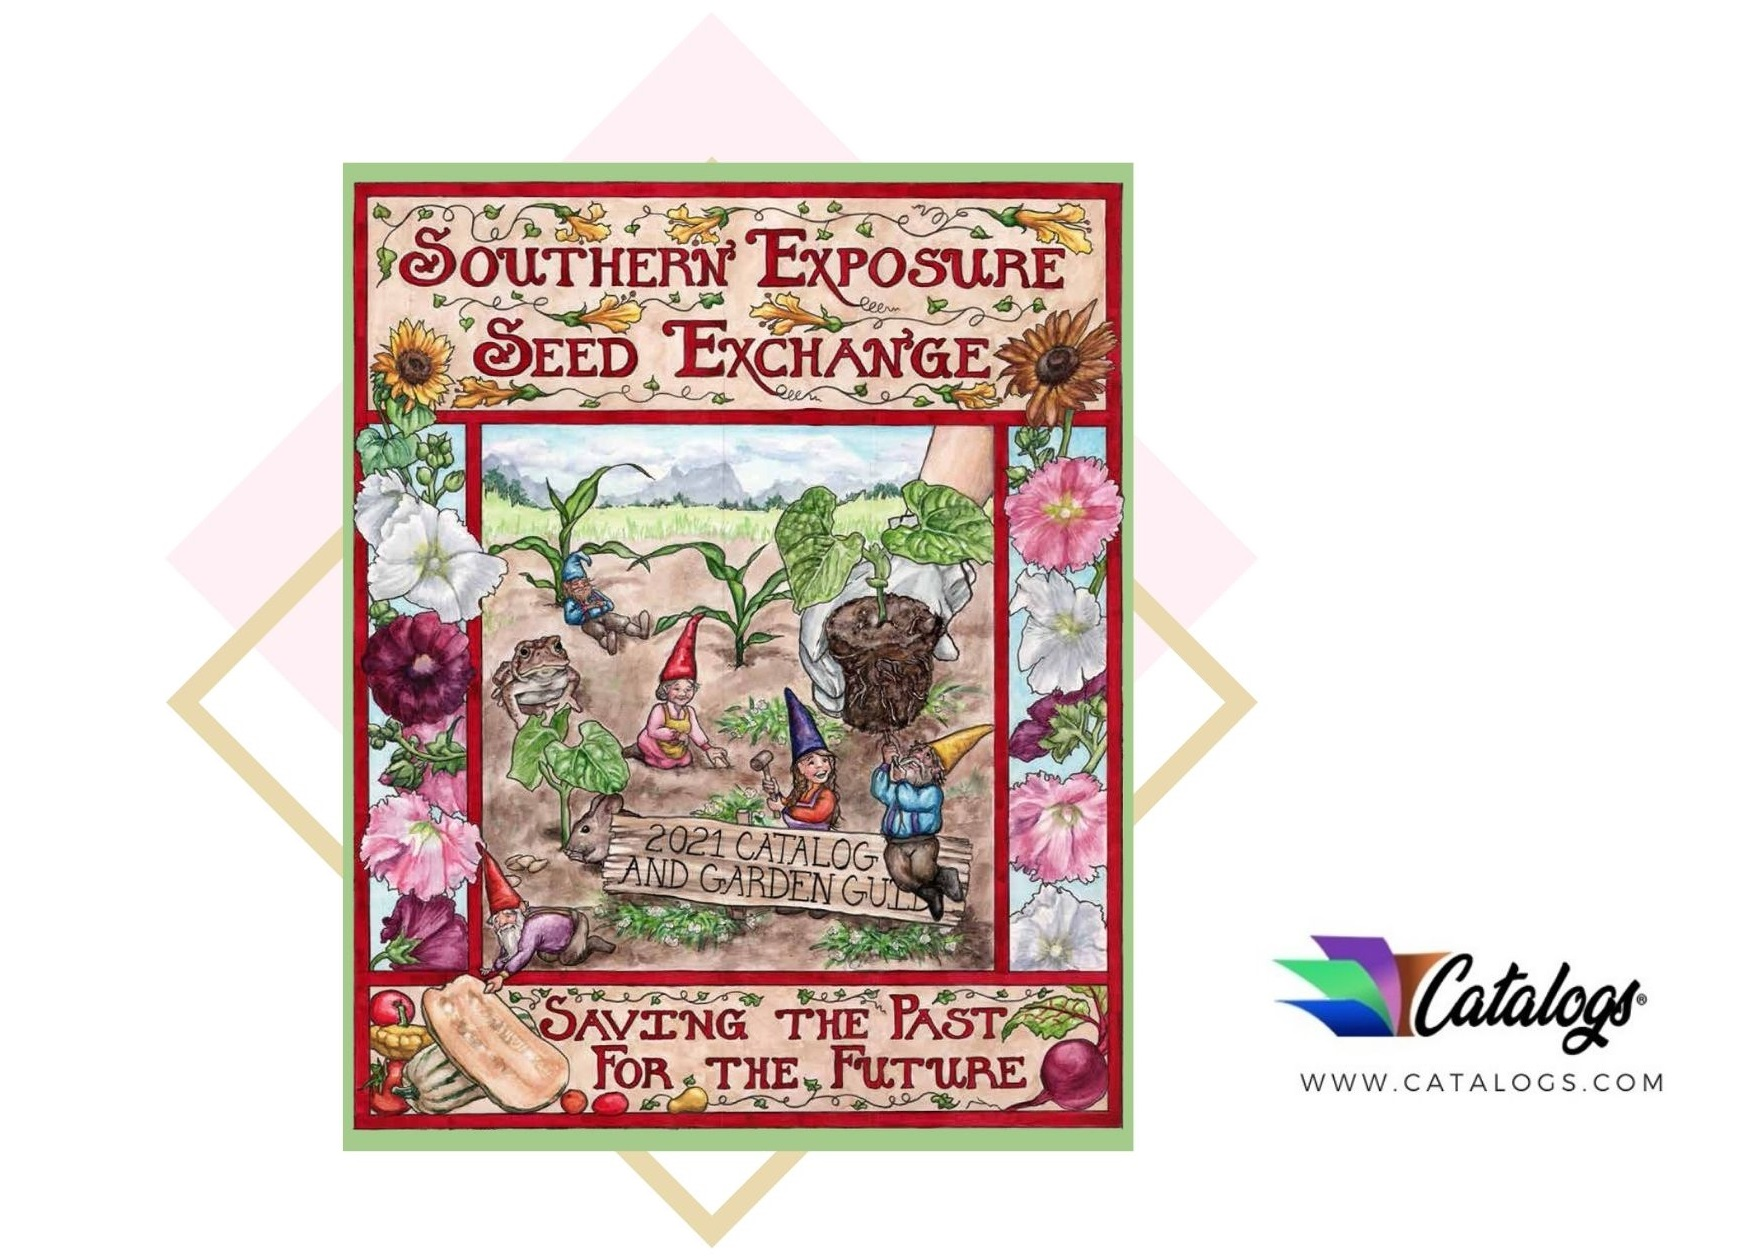 How Do I Order a Free Southern Exposure Seed Exchange Garden Catalog?